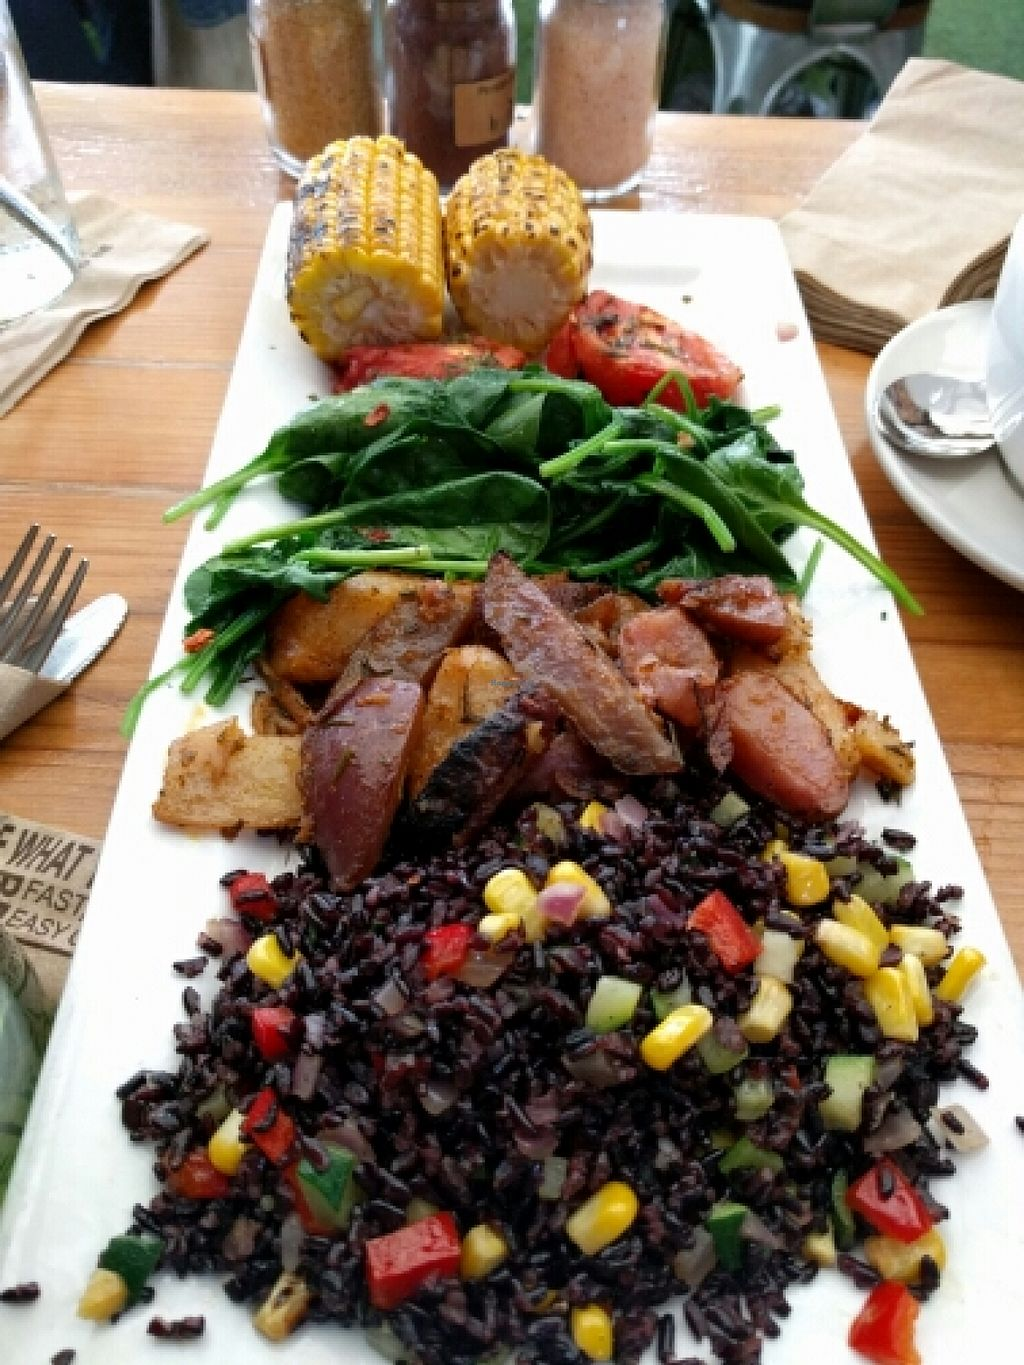 "Photo of Kreation Organic Kafe & Juicery  by <a href=""/members/profile/The%20Hungry%20Vegan"">The Hungry Vegan</a> <br/>Warm Veggie Tapas Sampler <br/> January 18, 2016  - <a href='/contact/abuse/image/14384/132940'>Report</a>"